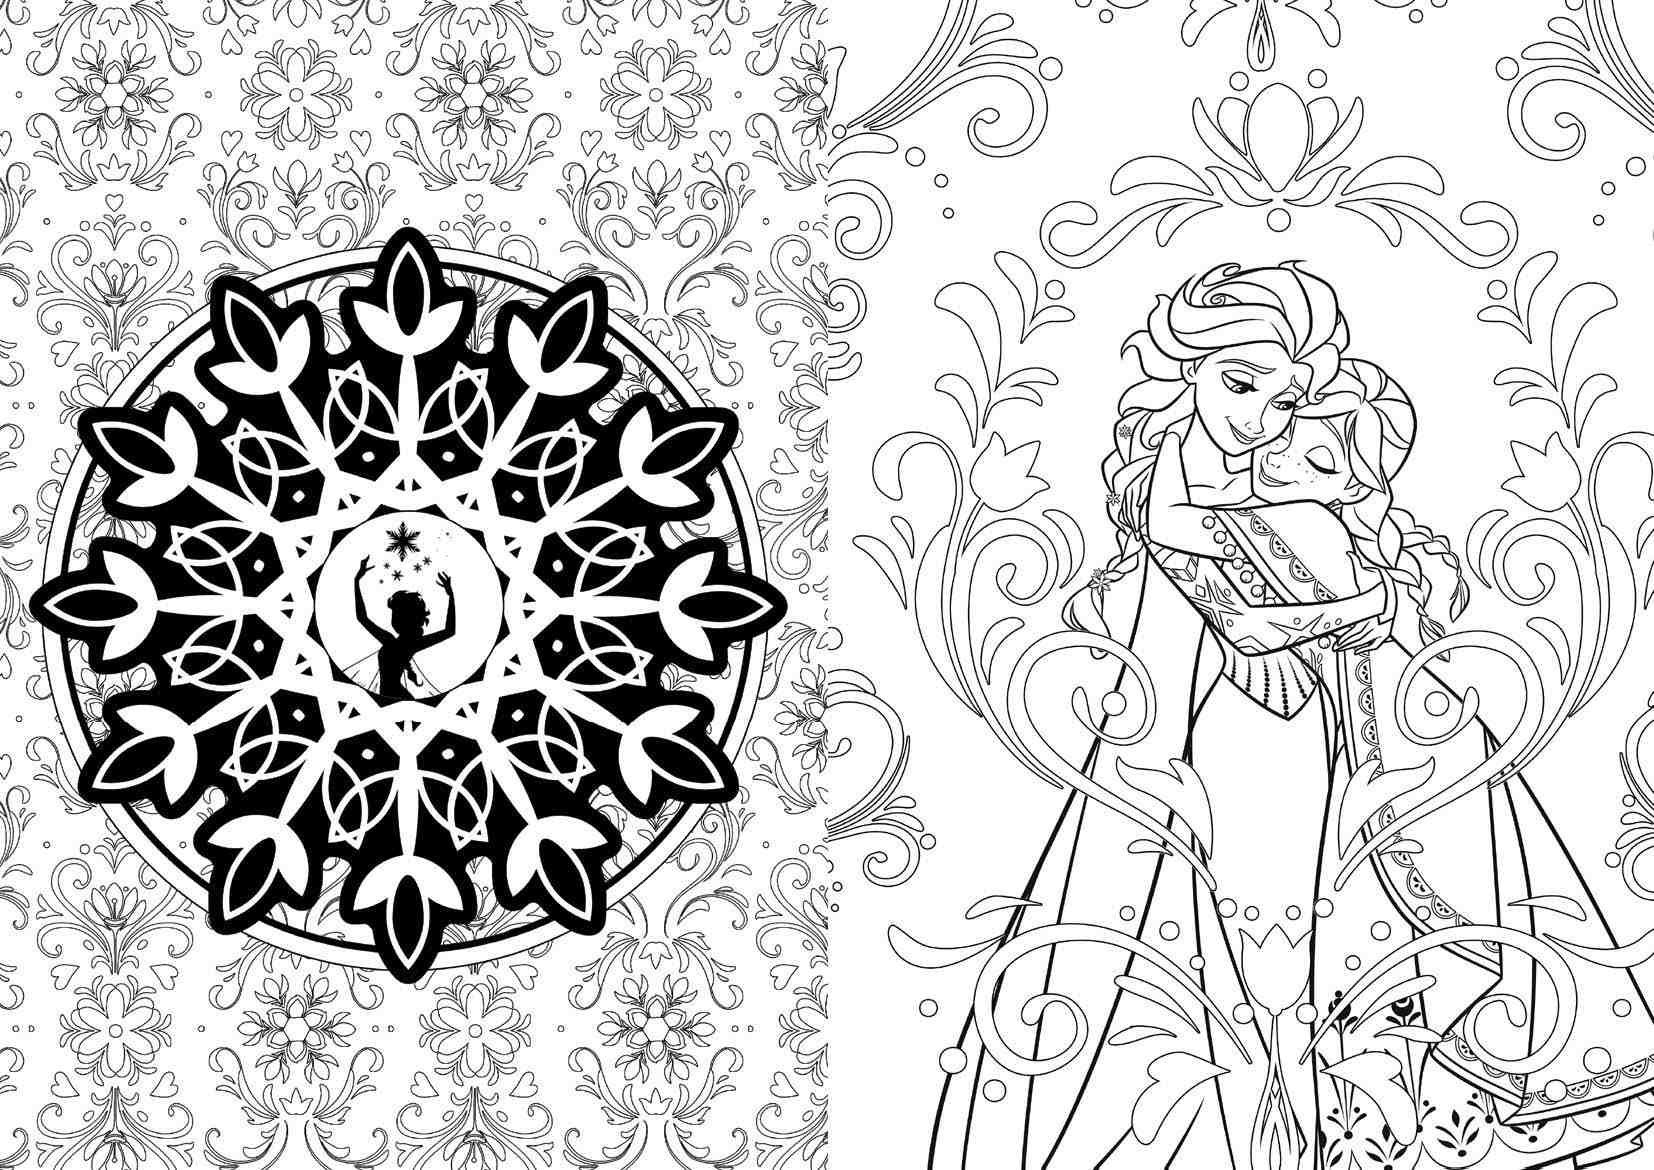 Disney Offers Coloring Books For Adults